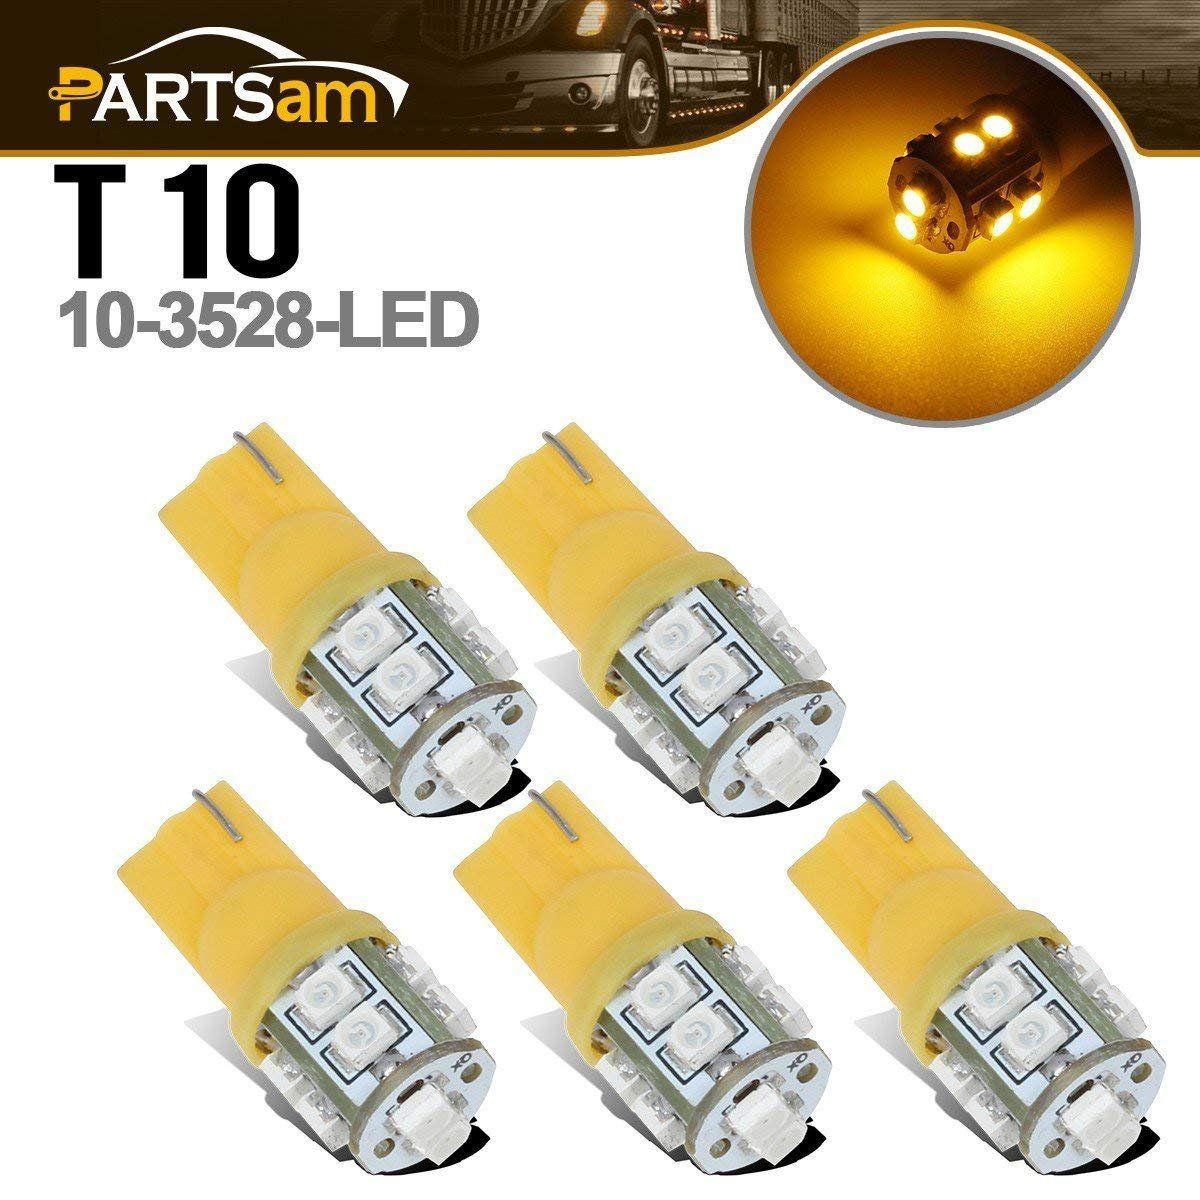 Partsam T10 LED Light Bulbs 5pcs 10-3528-SMD Chipset 194 168 Amber LED Replacement Bulbs for Jeep Ford Dodge Chevrolet GMC Pickup Truck Cab Marker Roof Running Top Clearance Light 12V (Pack of 5)